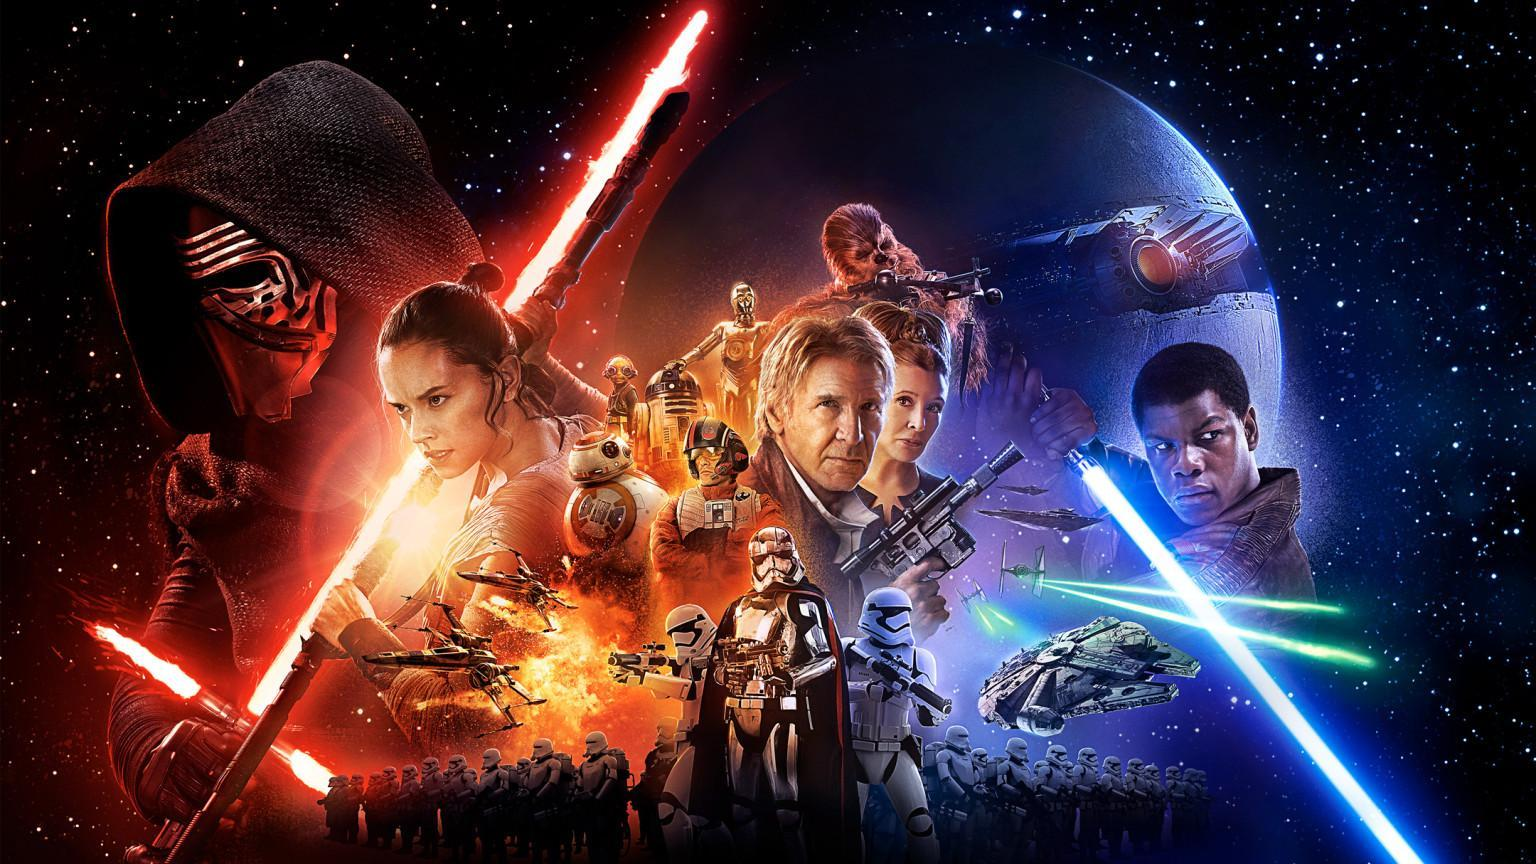 Are YOU Going to See Star Wars: The Force Awakens?